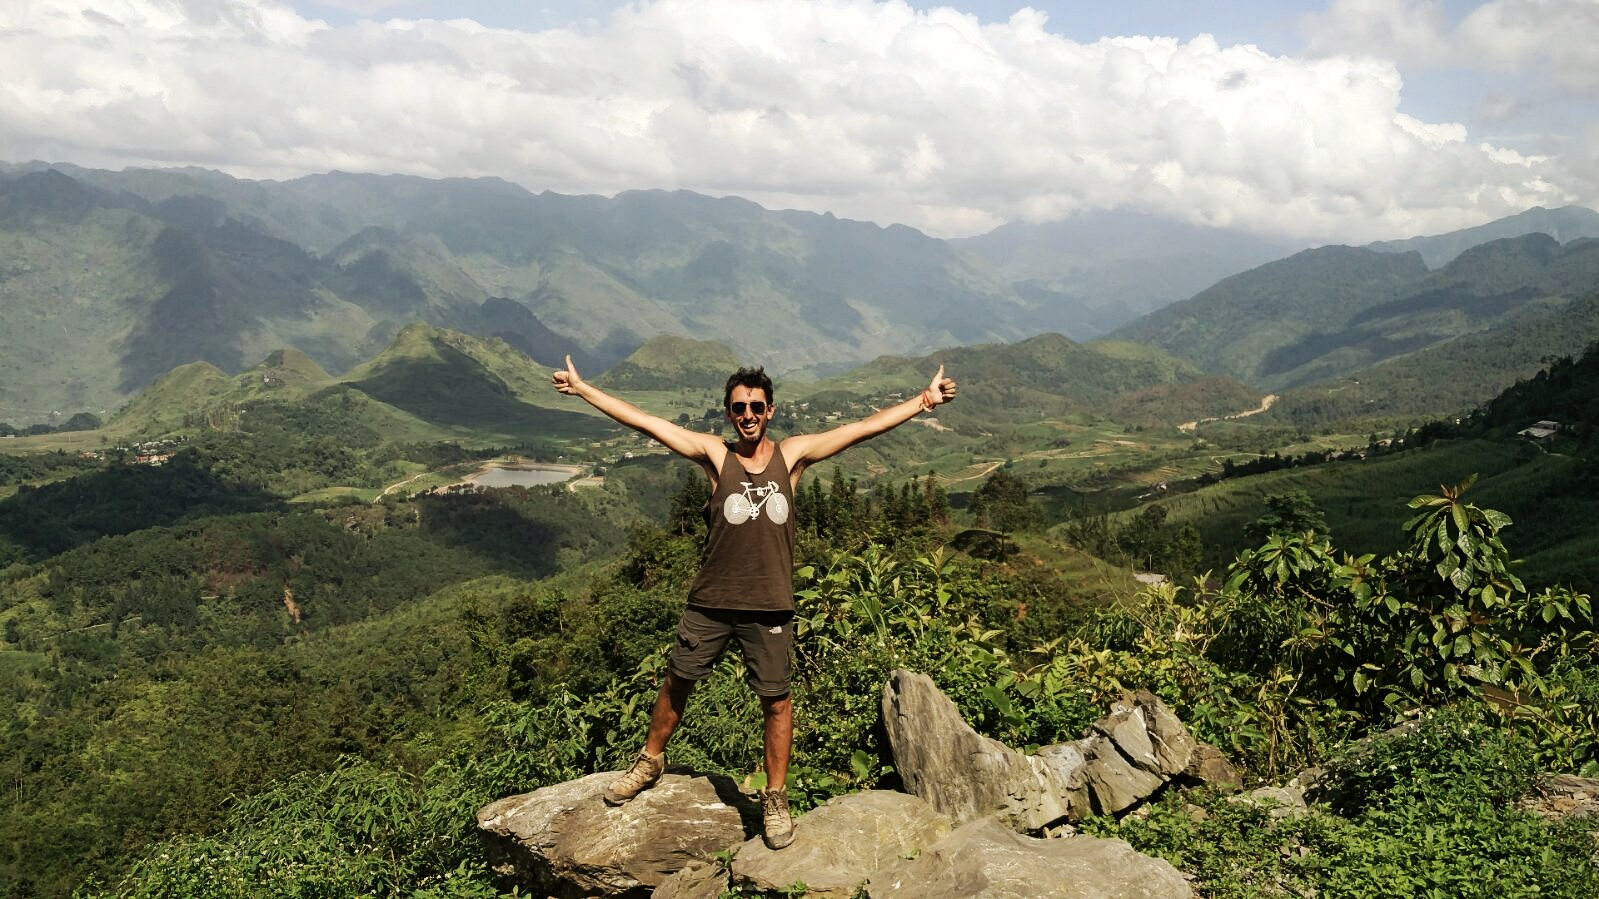 Cristian looking happy and staying with his arms outstretched with the mountains background